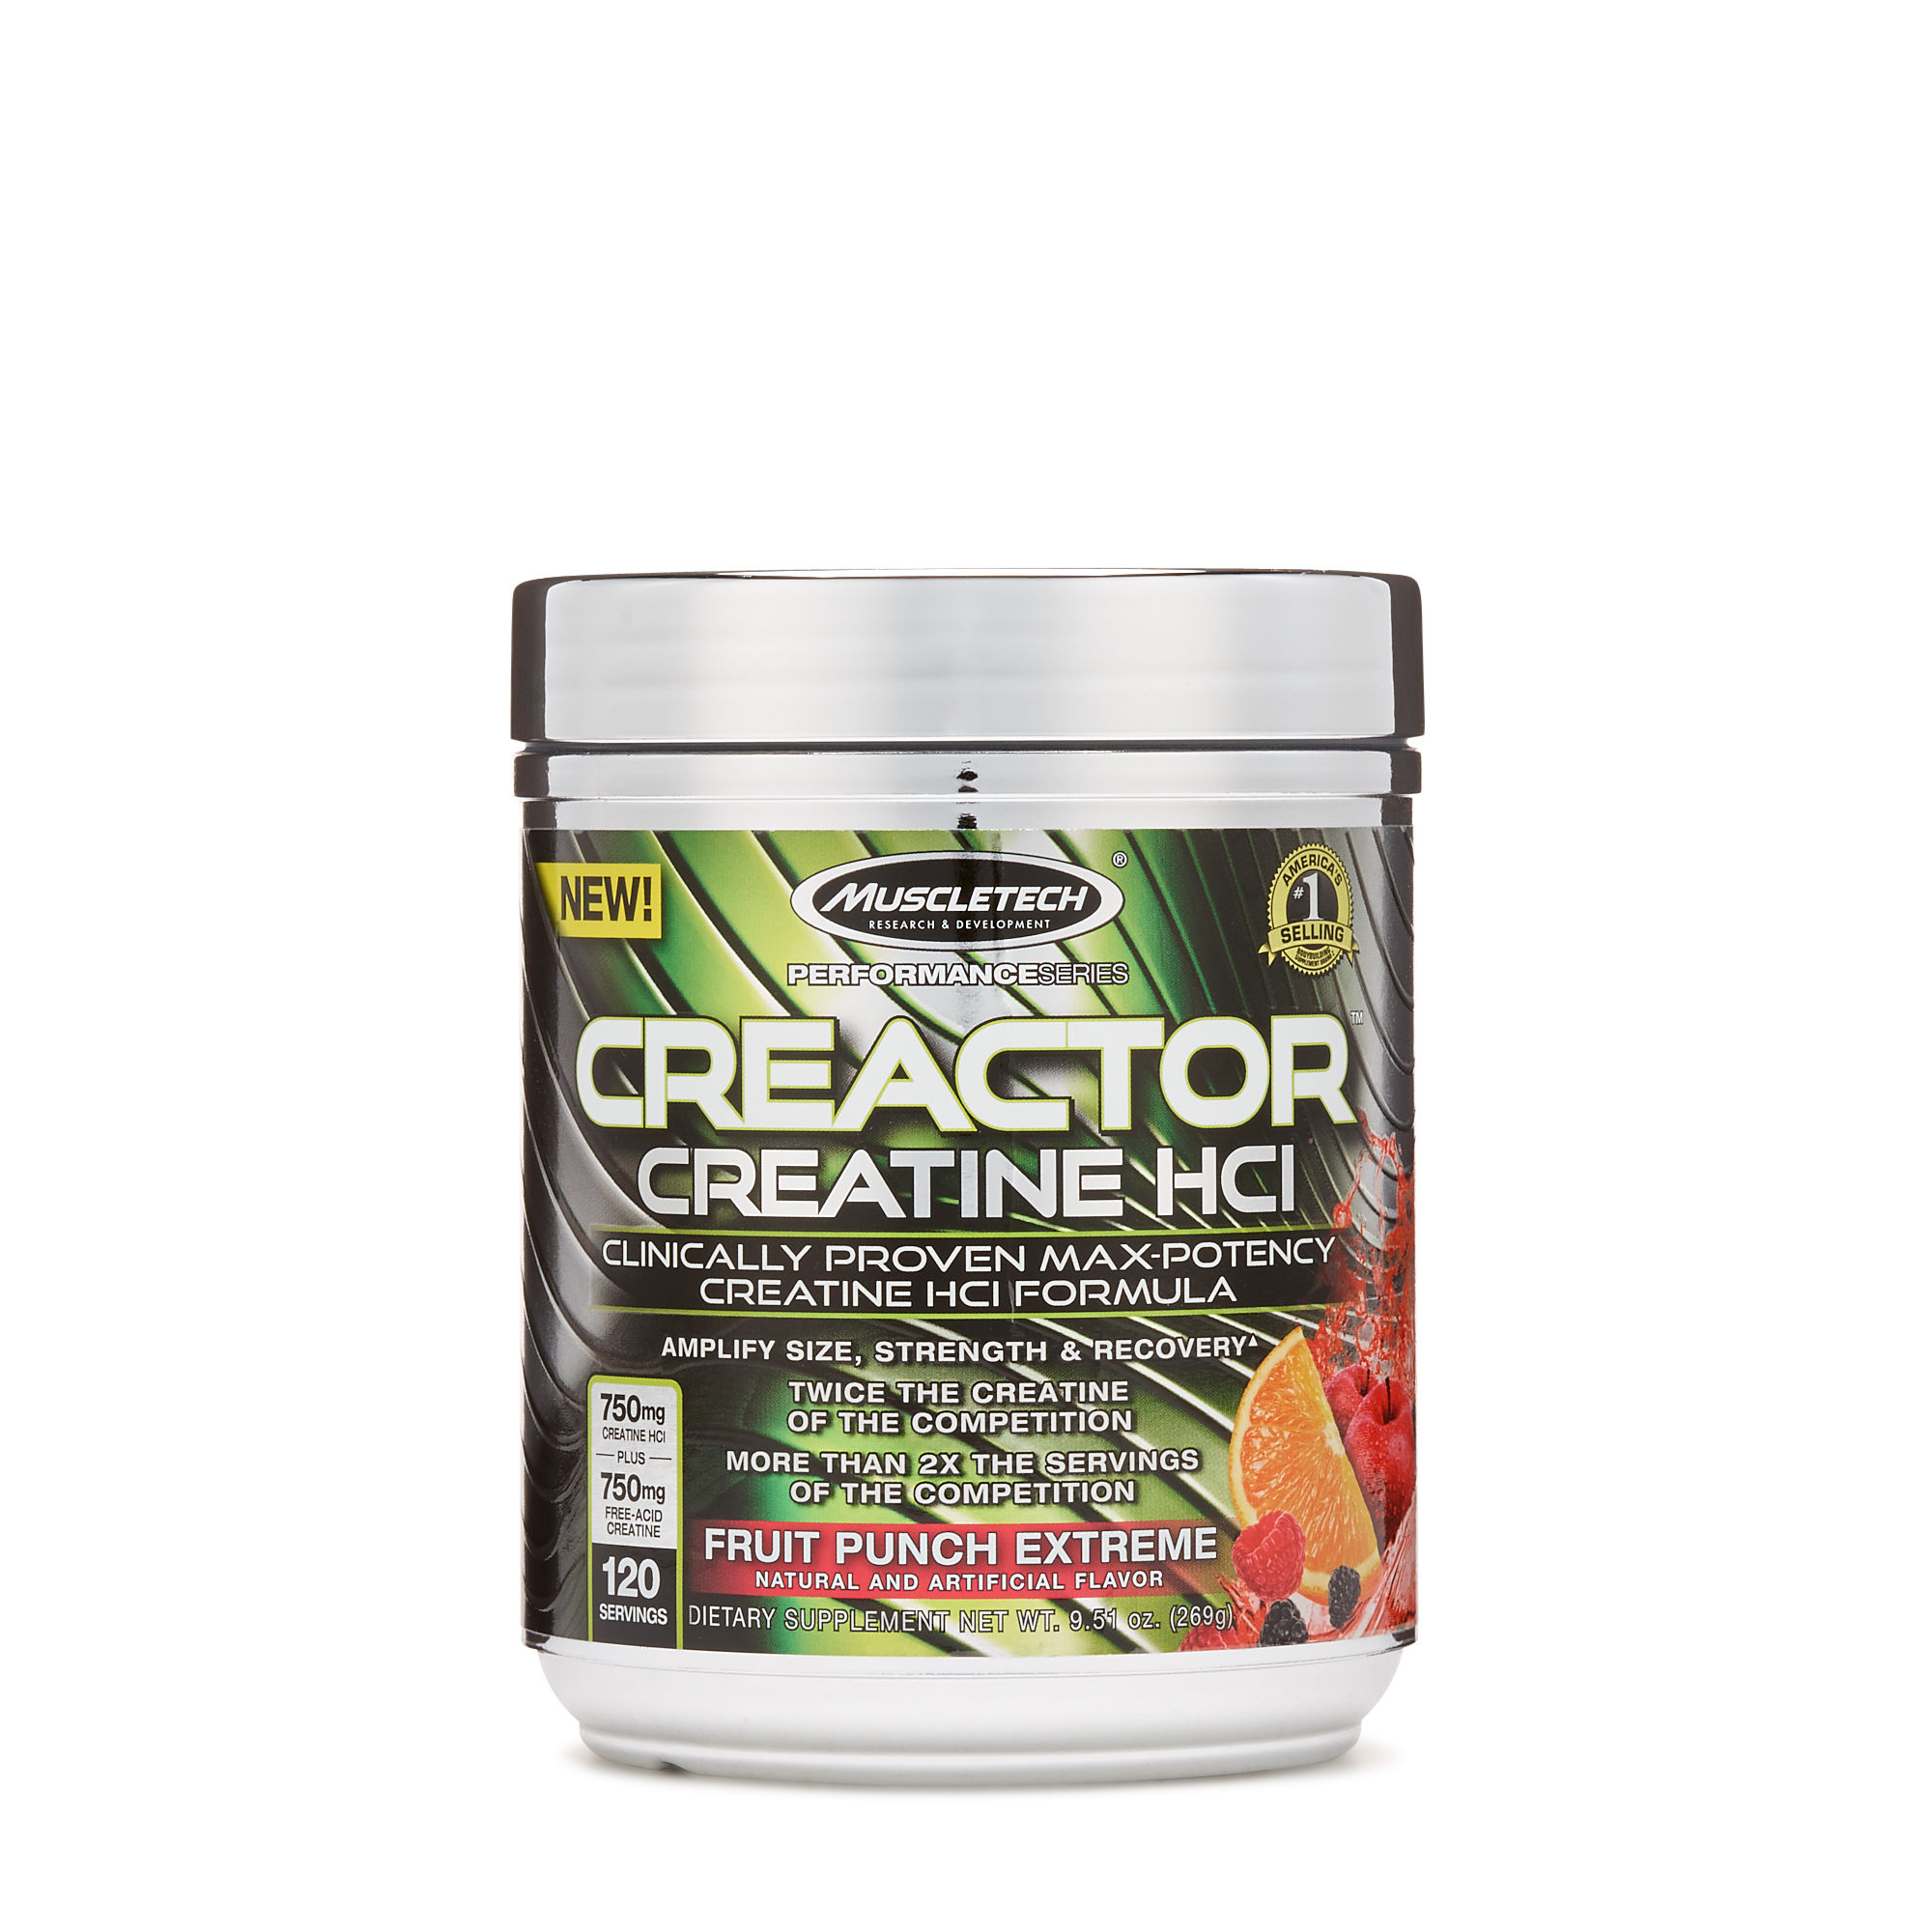 MuscleTech Creactor - Available in: Fruit Punch, Icy Rocket Freeze• Amplify size, strength & recovery• No loading or bloating• More than 2x the servings of the competition• Twice the creatine of the competitionCreactor rapidly enhances your muscle cells' ability to regenerate adenosine triphosphate (ATP). ATP is your primary source of anaerobic energy, so you can recovery faster between sets.The powerful creatine molecules in Creactor are changed into a molecule called phosphocreatine, which serves as a storage reservoir for regenerating ATP. With higher ATP levels, you'll be able to train harder and recover faster, and that means bigger and stronger gains!